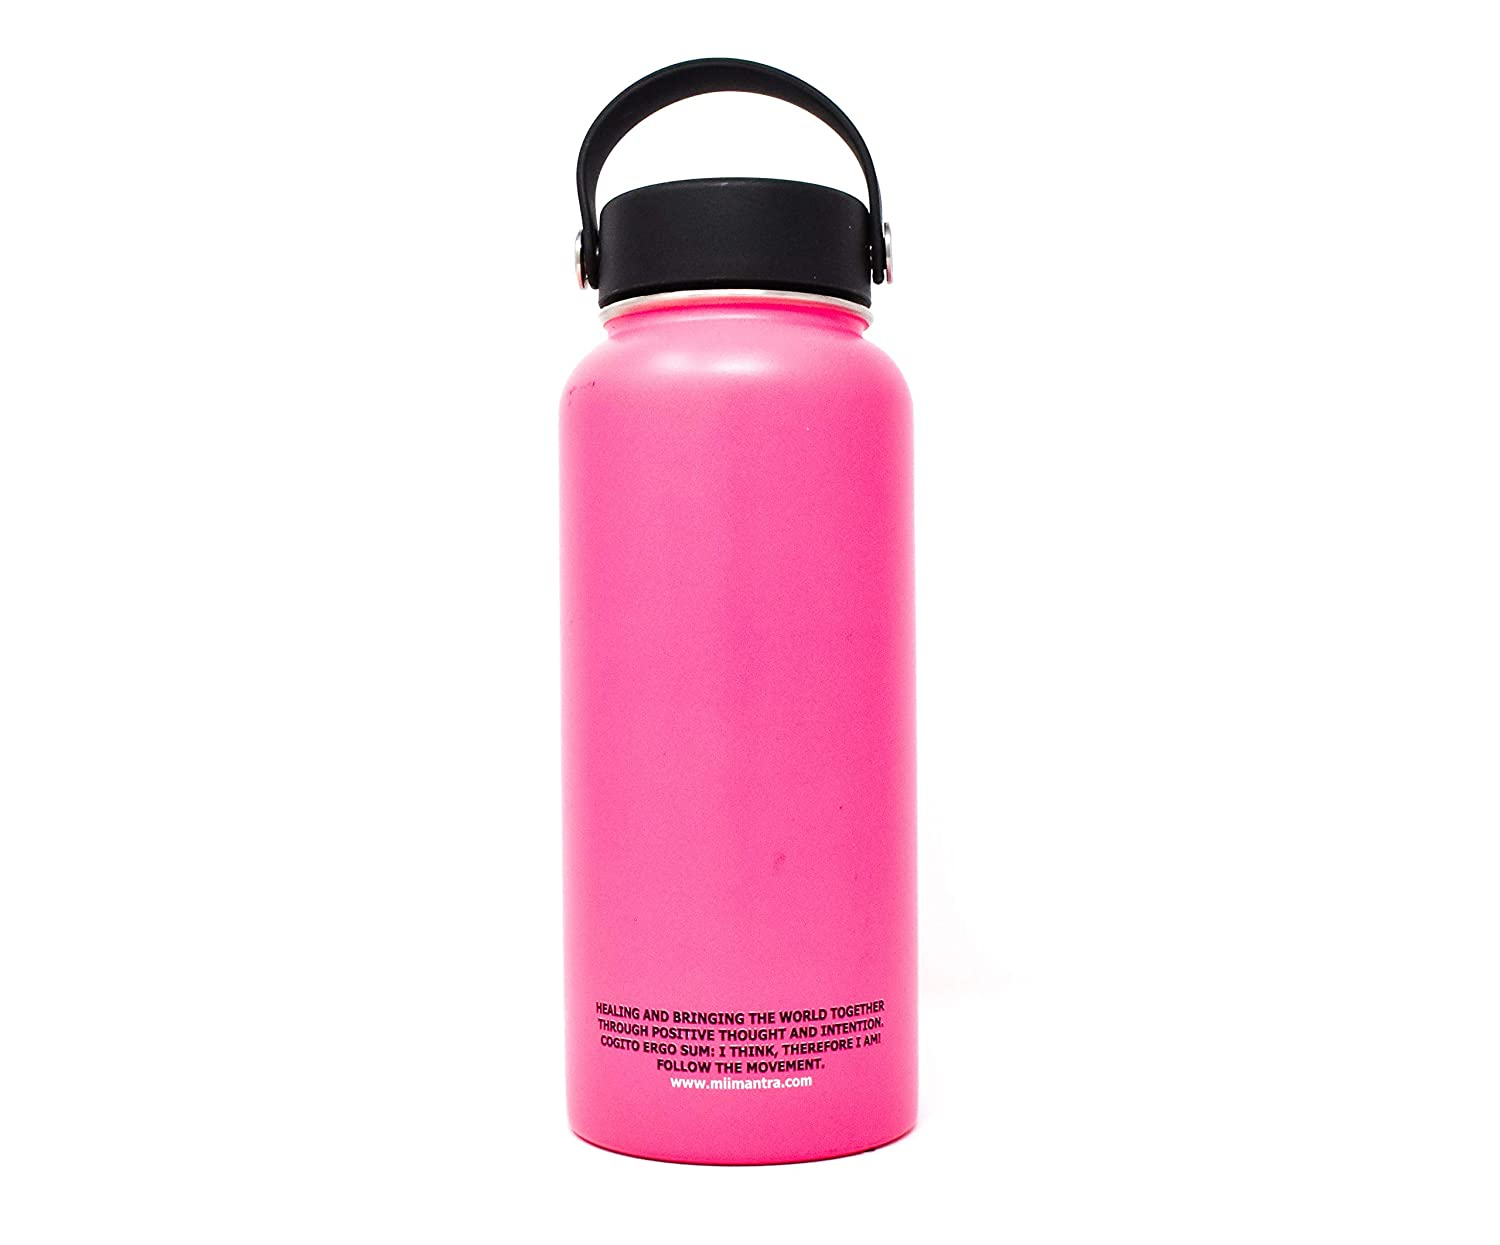 Healing Affirmation Double-Walled Insulated Stainless Steel Leak Proof Sports Water Bottle Wide Mouth with BPA Free Flex Cap Mii Mantra Flask